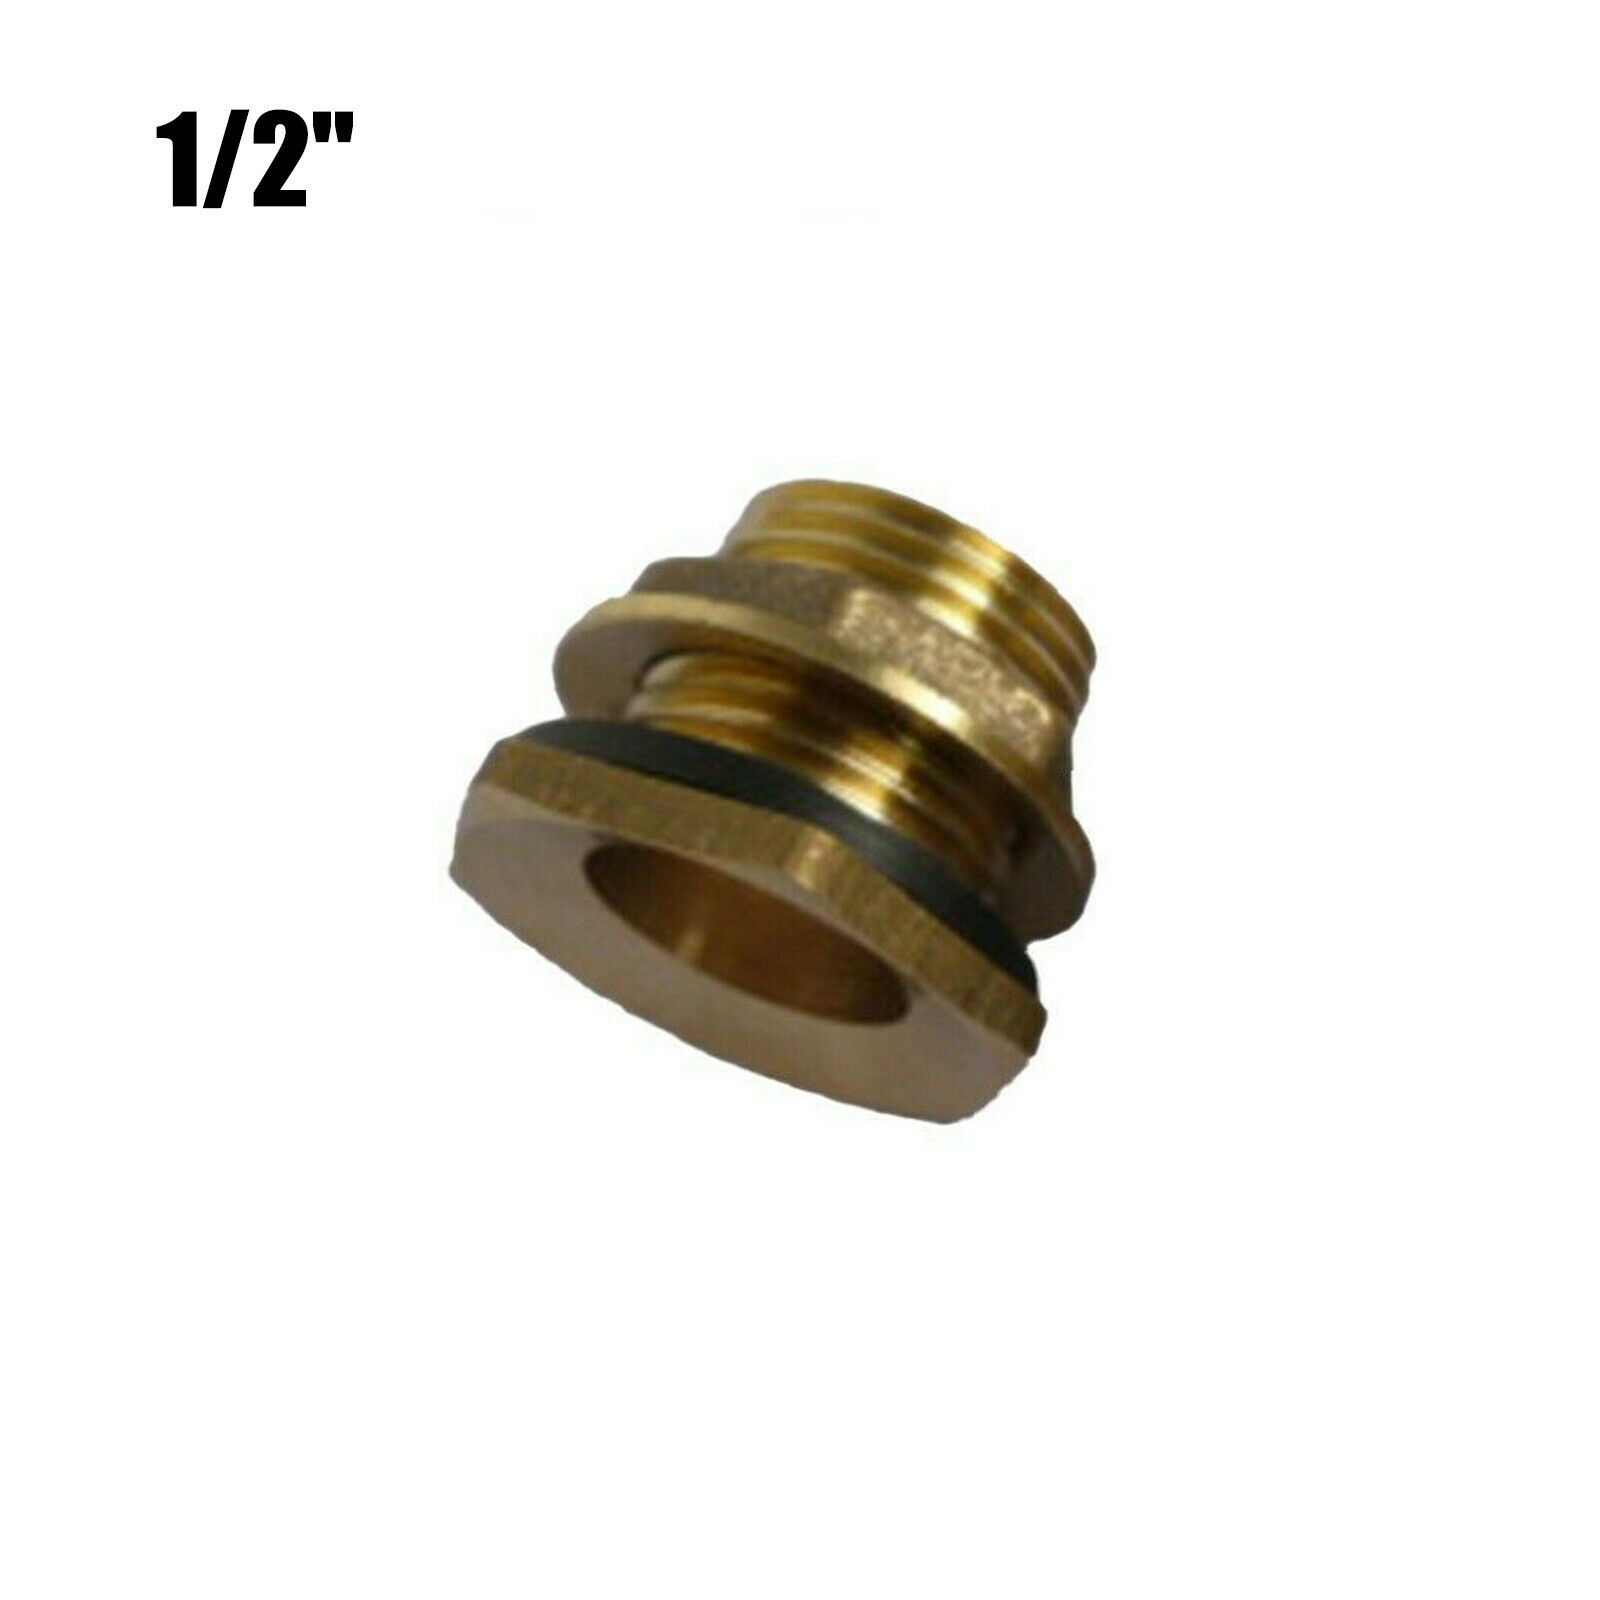 Water Connector Brass Bib Tap With Click-lock Fitting Anti-corrosion Equipmen ~